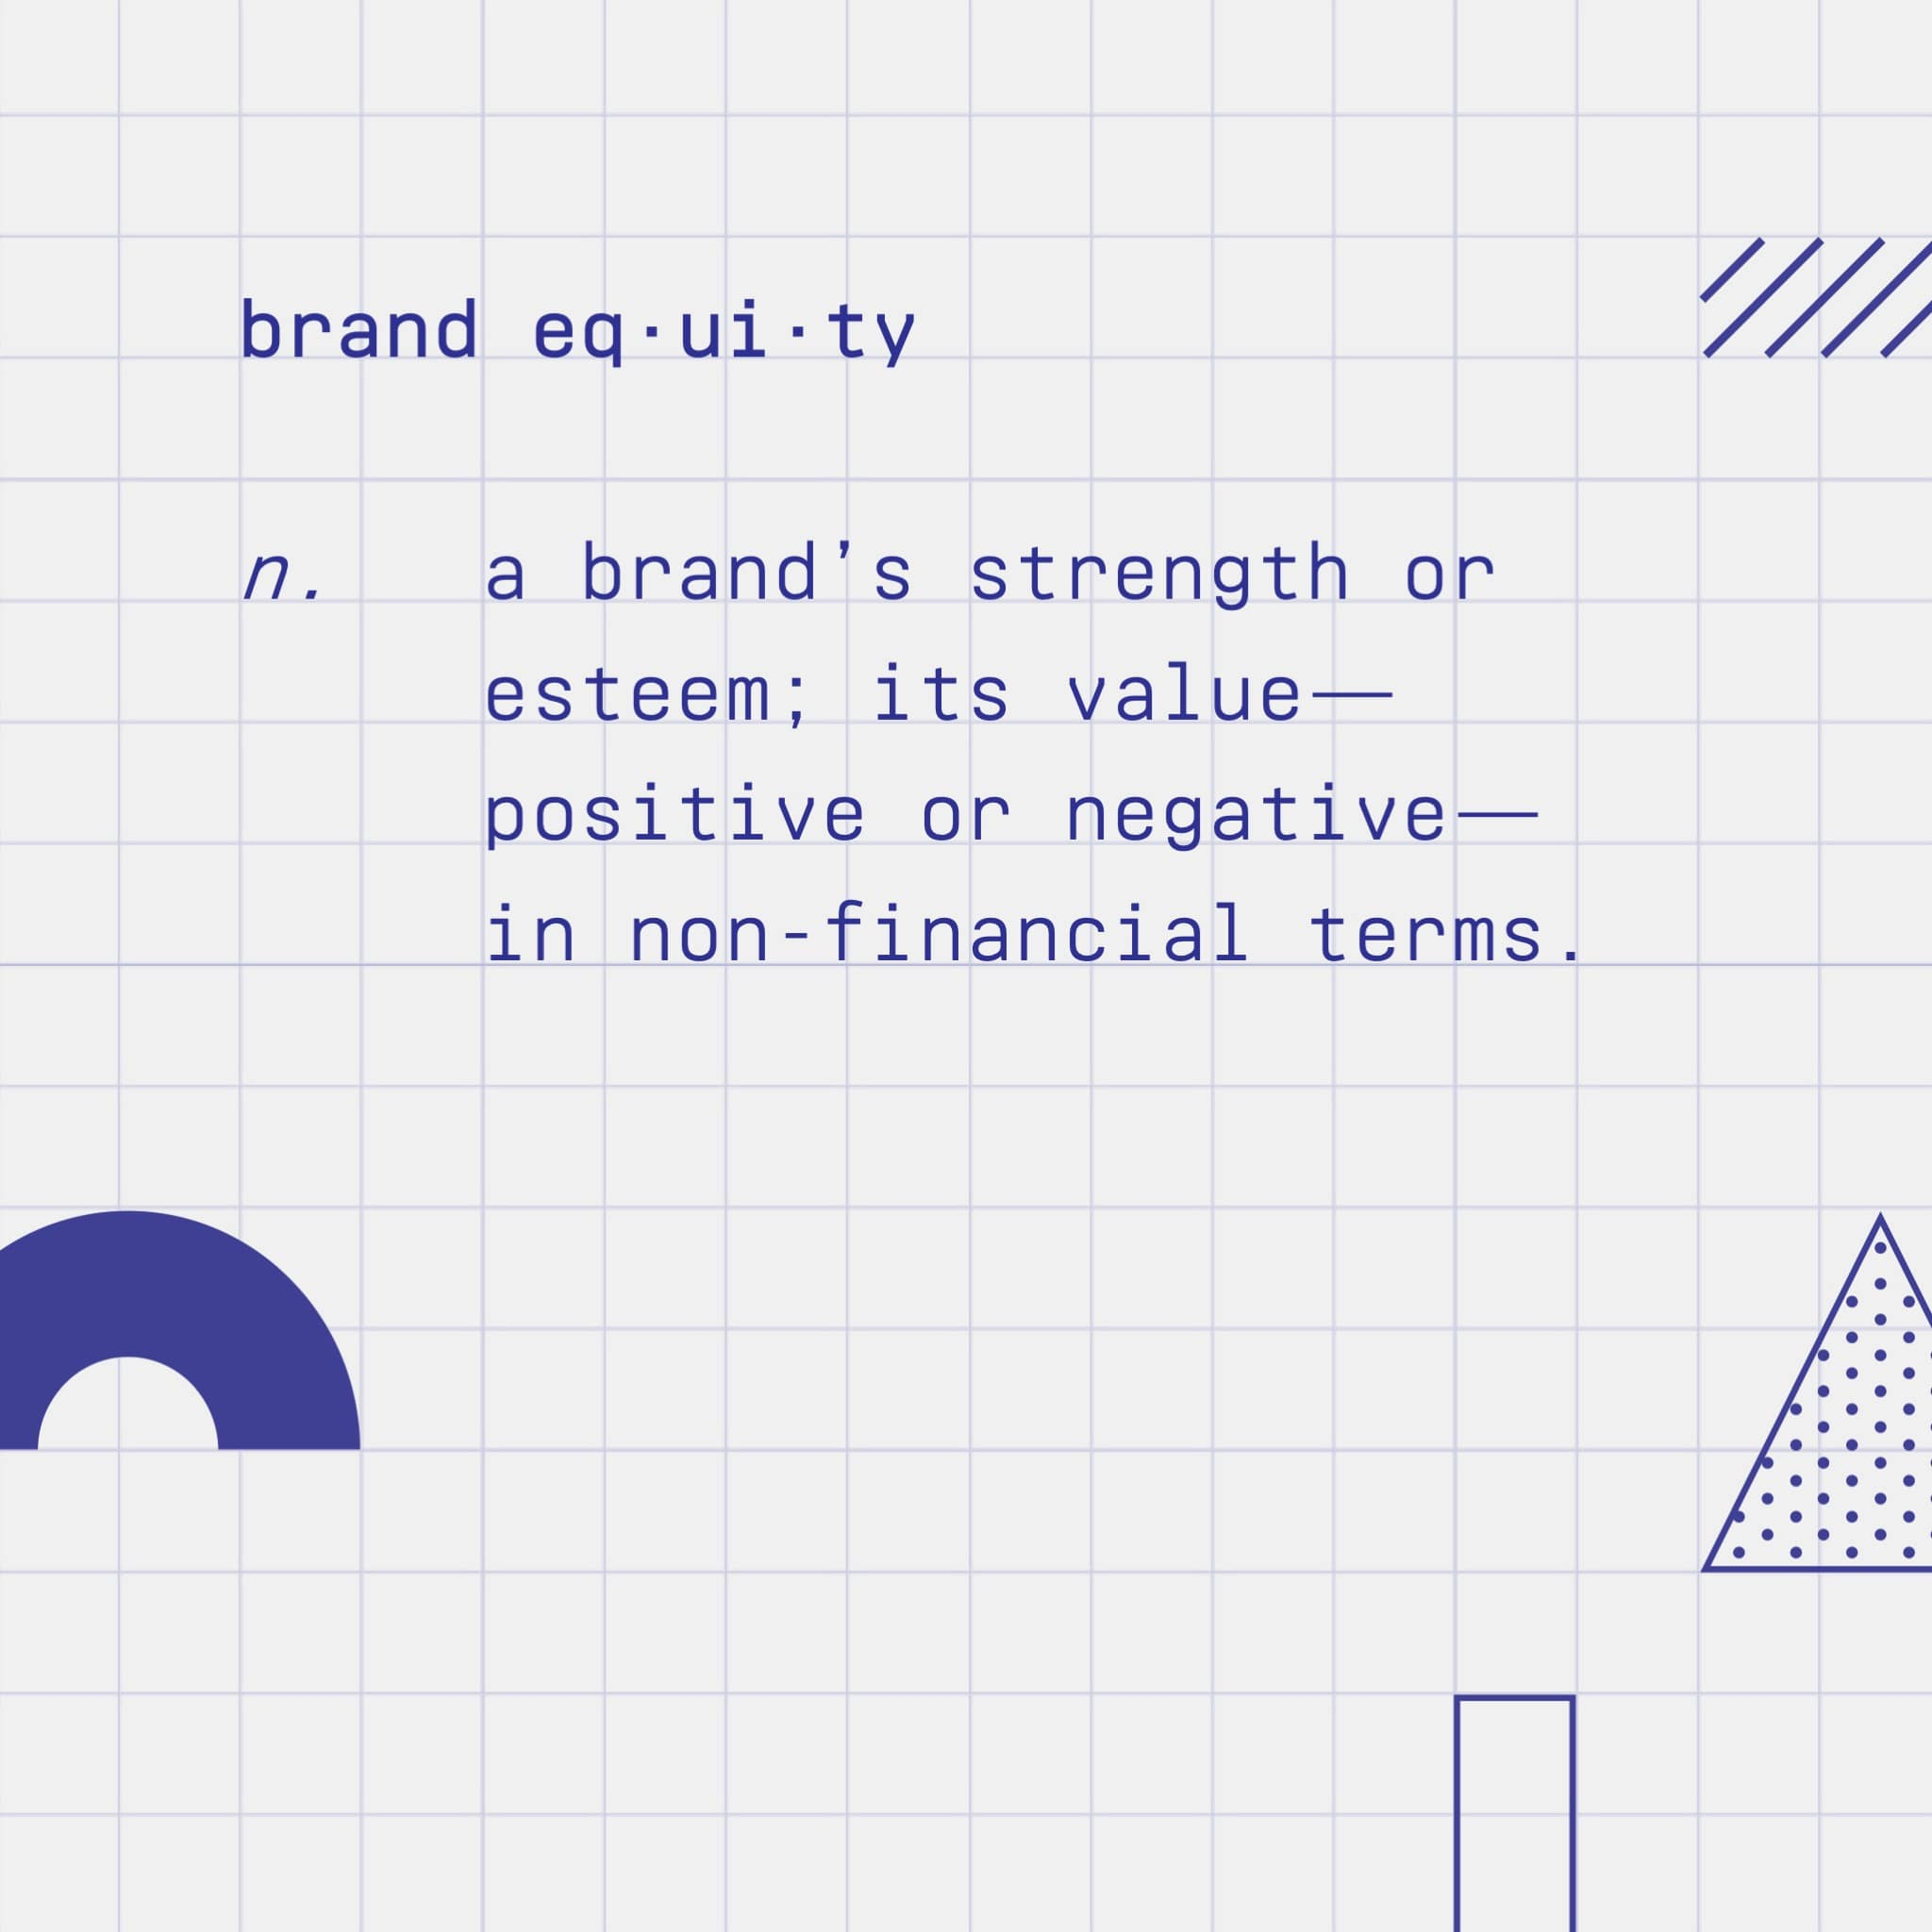 Brand equity definition